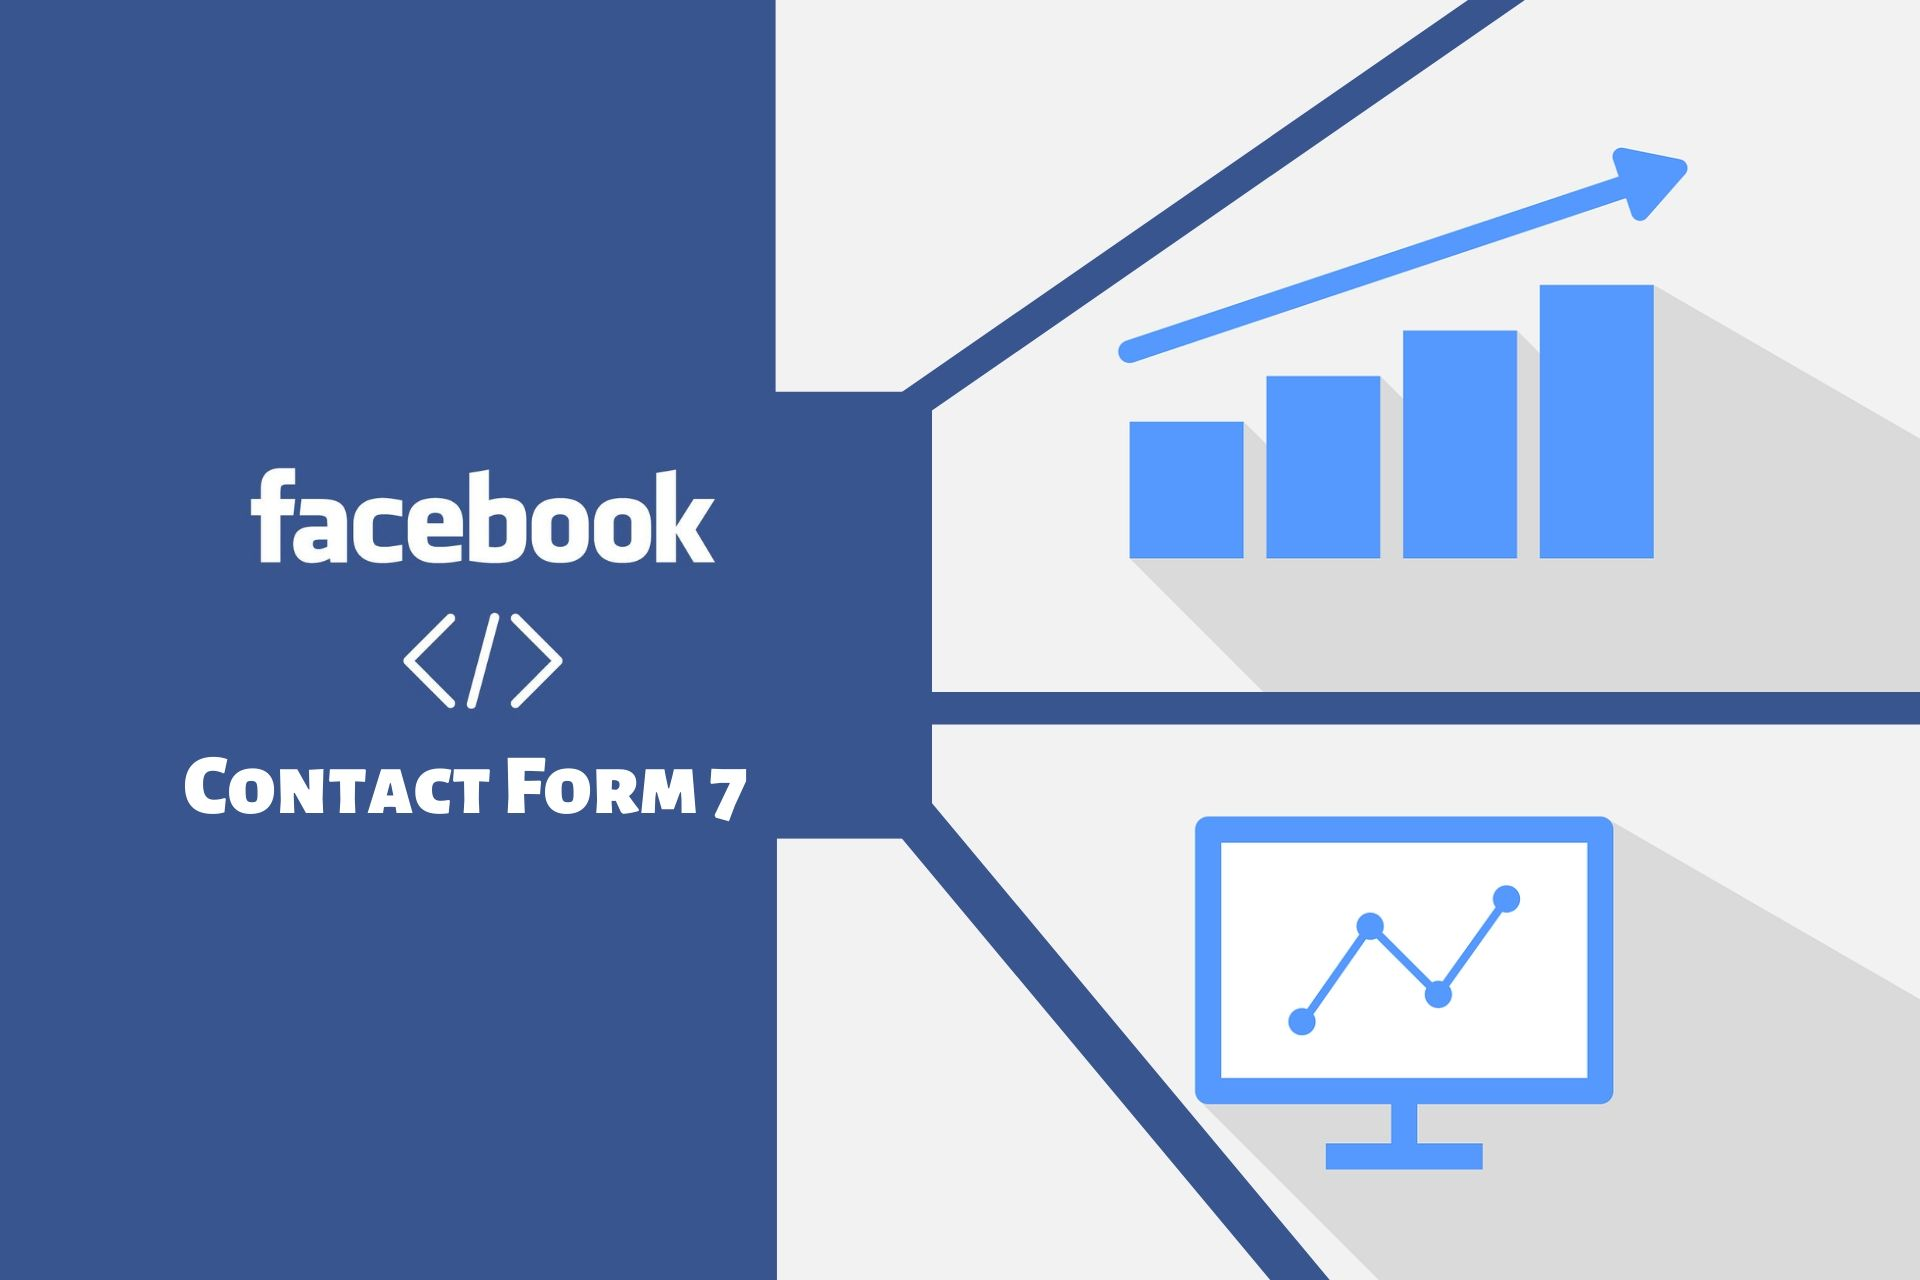 facebok pixel & contact form 7